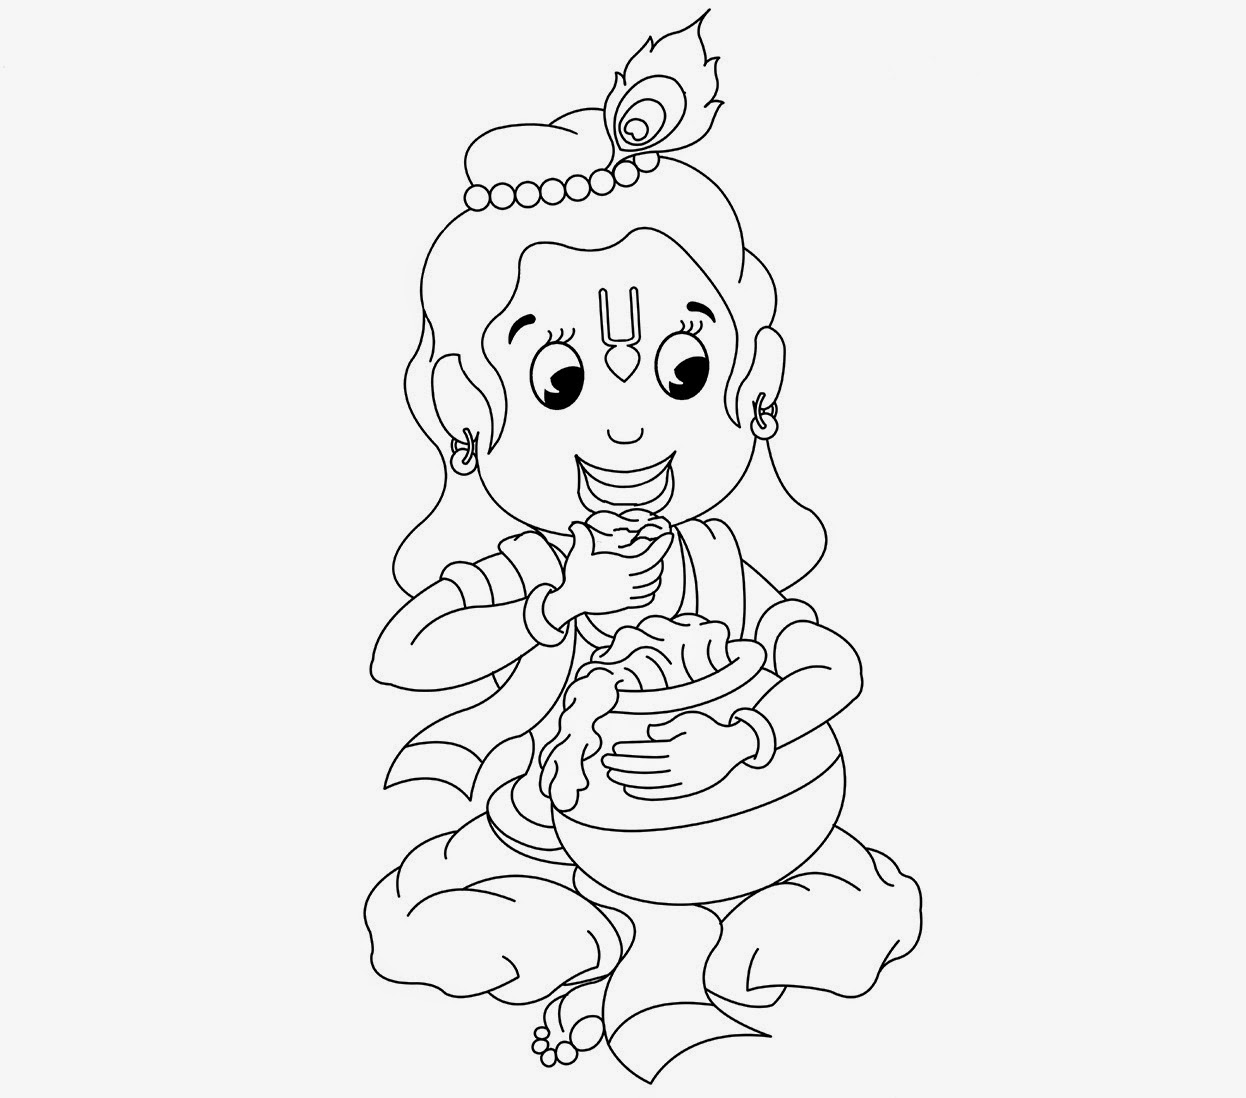 Krishna easy drawing for kids